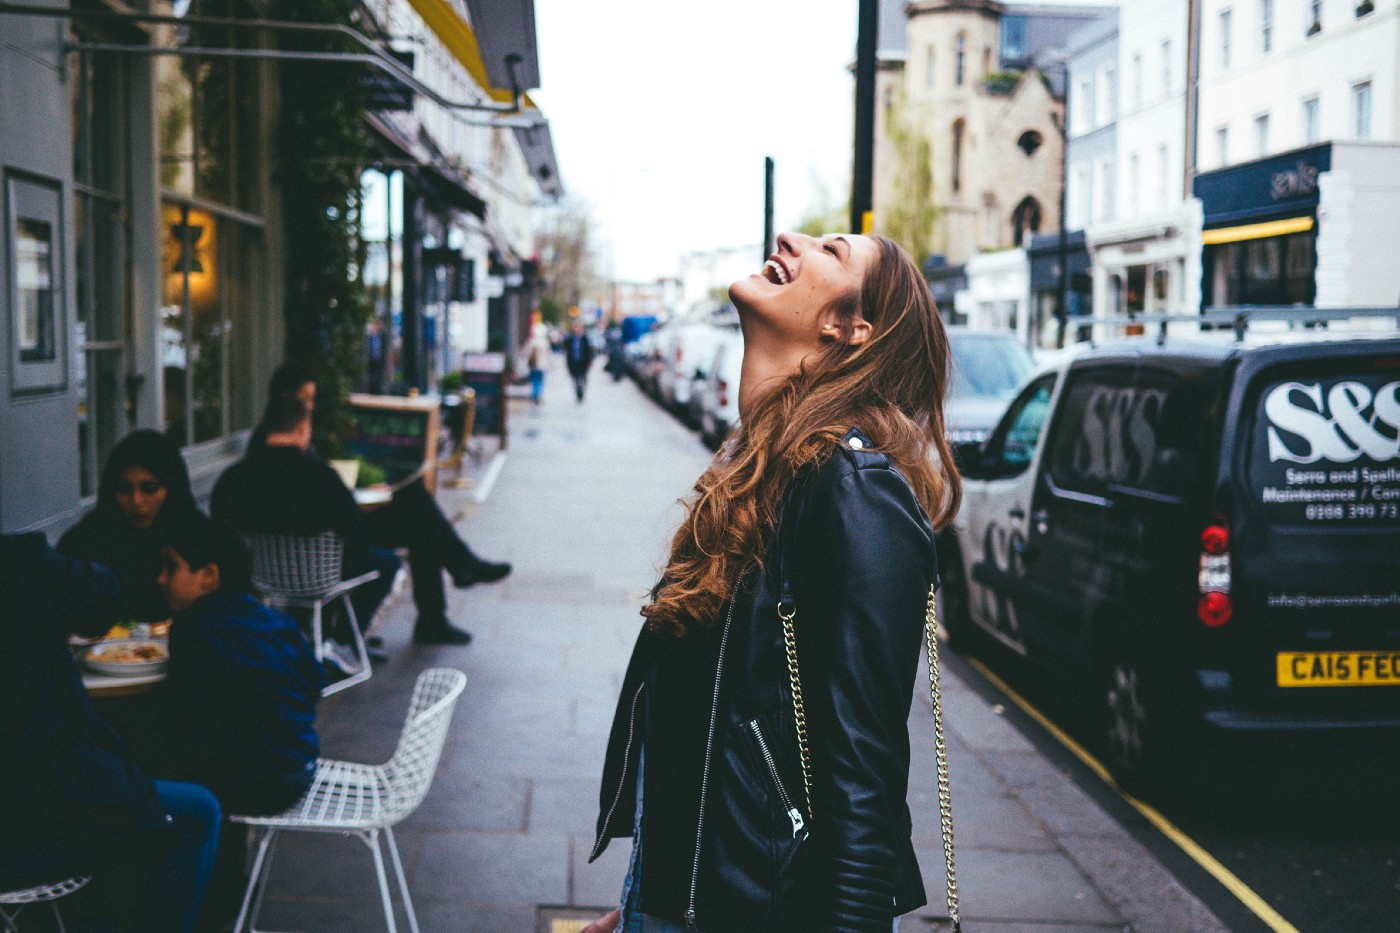 smiling girl with long brown hair wearing black leather jacket standing on sidewalk and looking up to sky